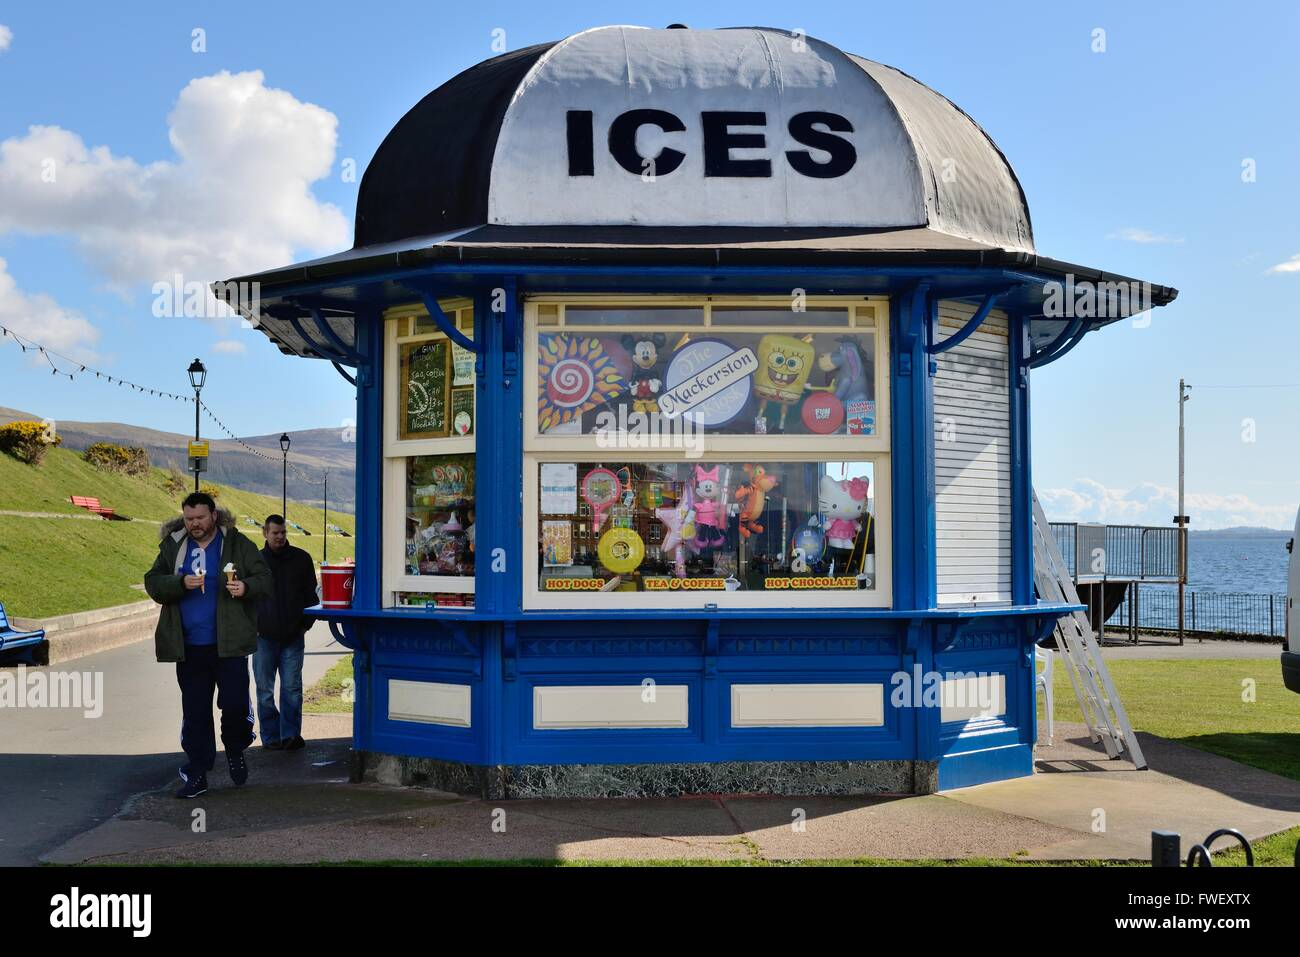 Ice cream kiosk on the promenade at Largs, Ayrshire, Scotland, UK - Stock Image